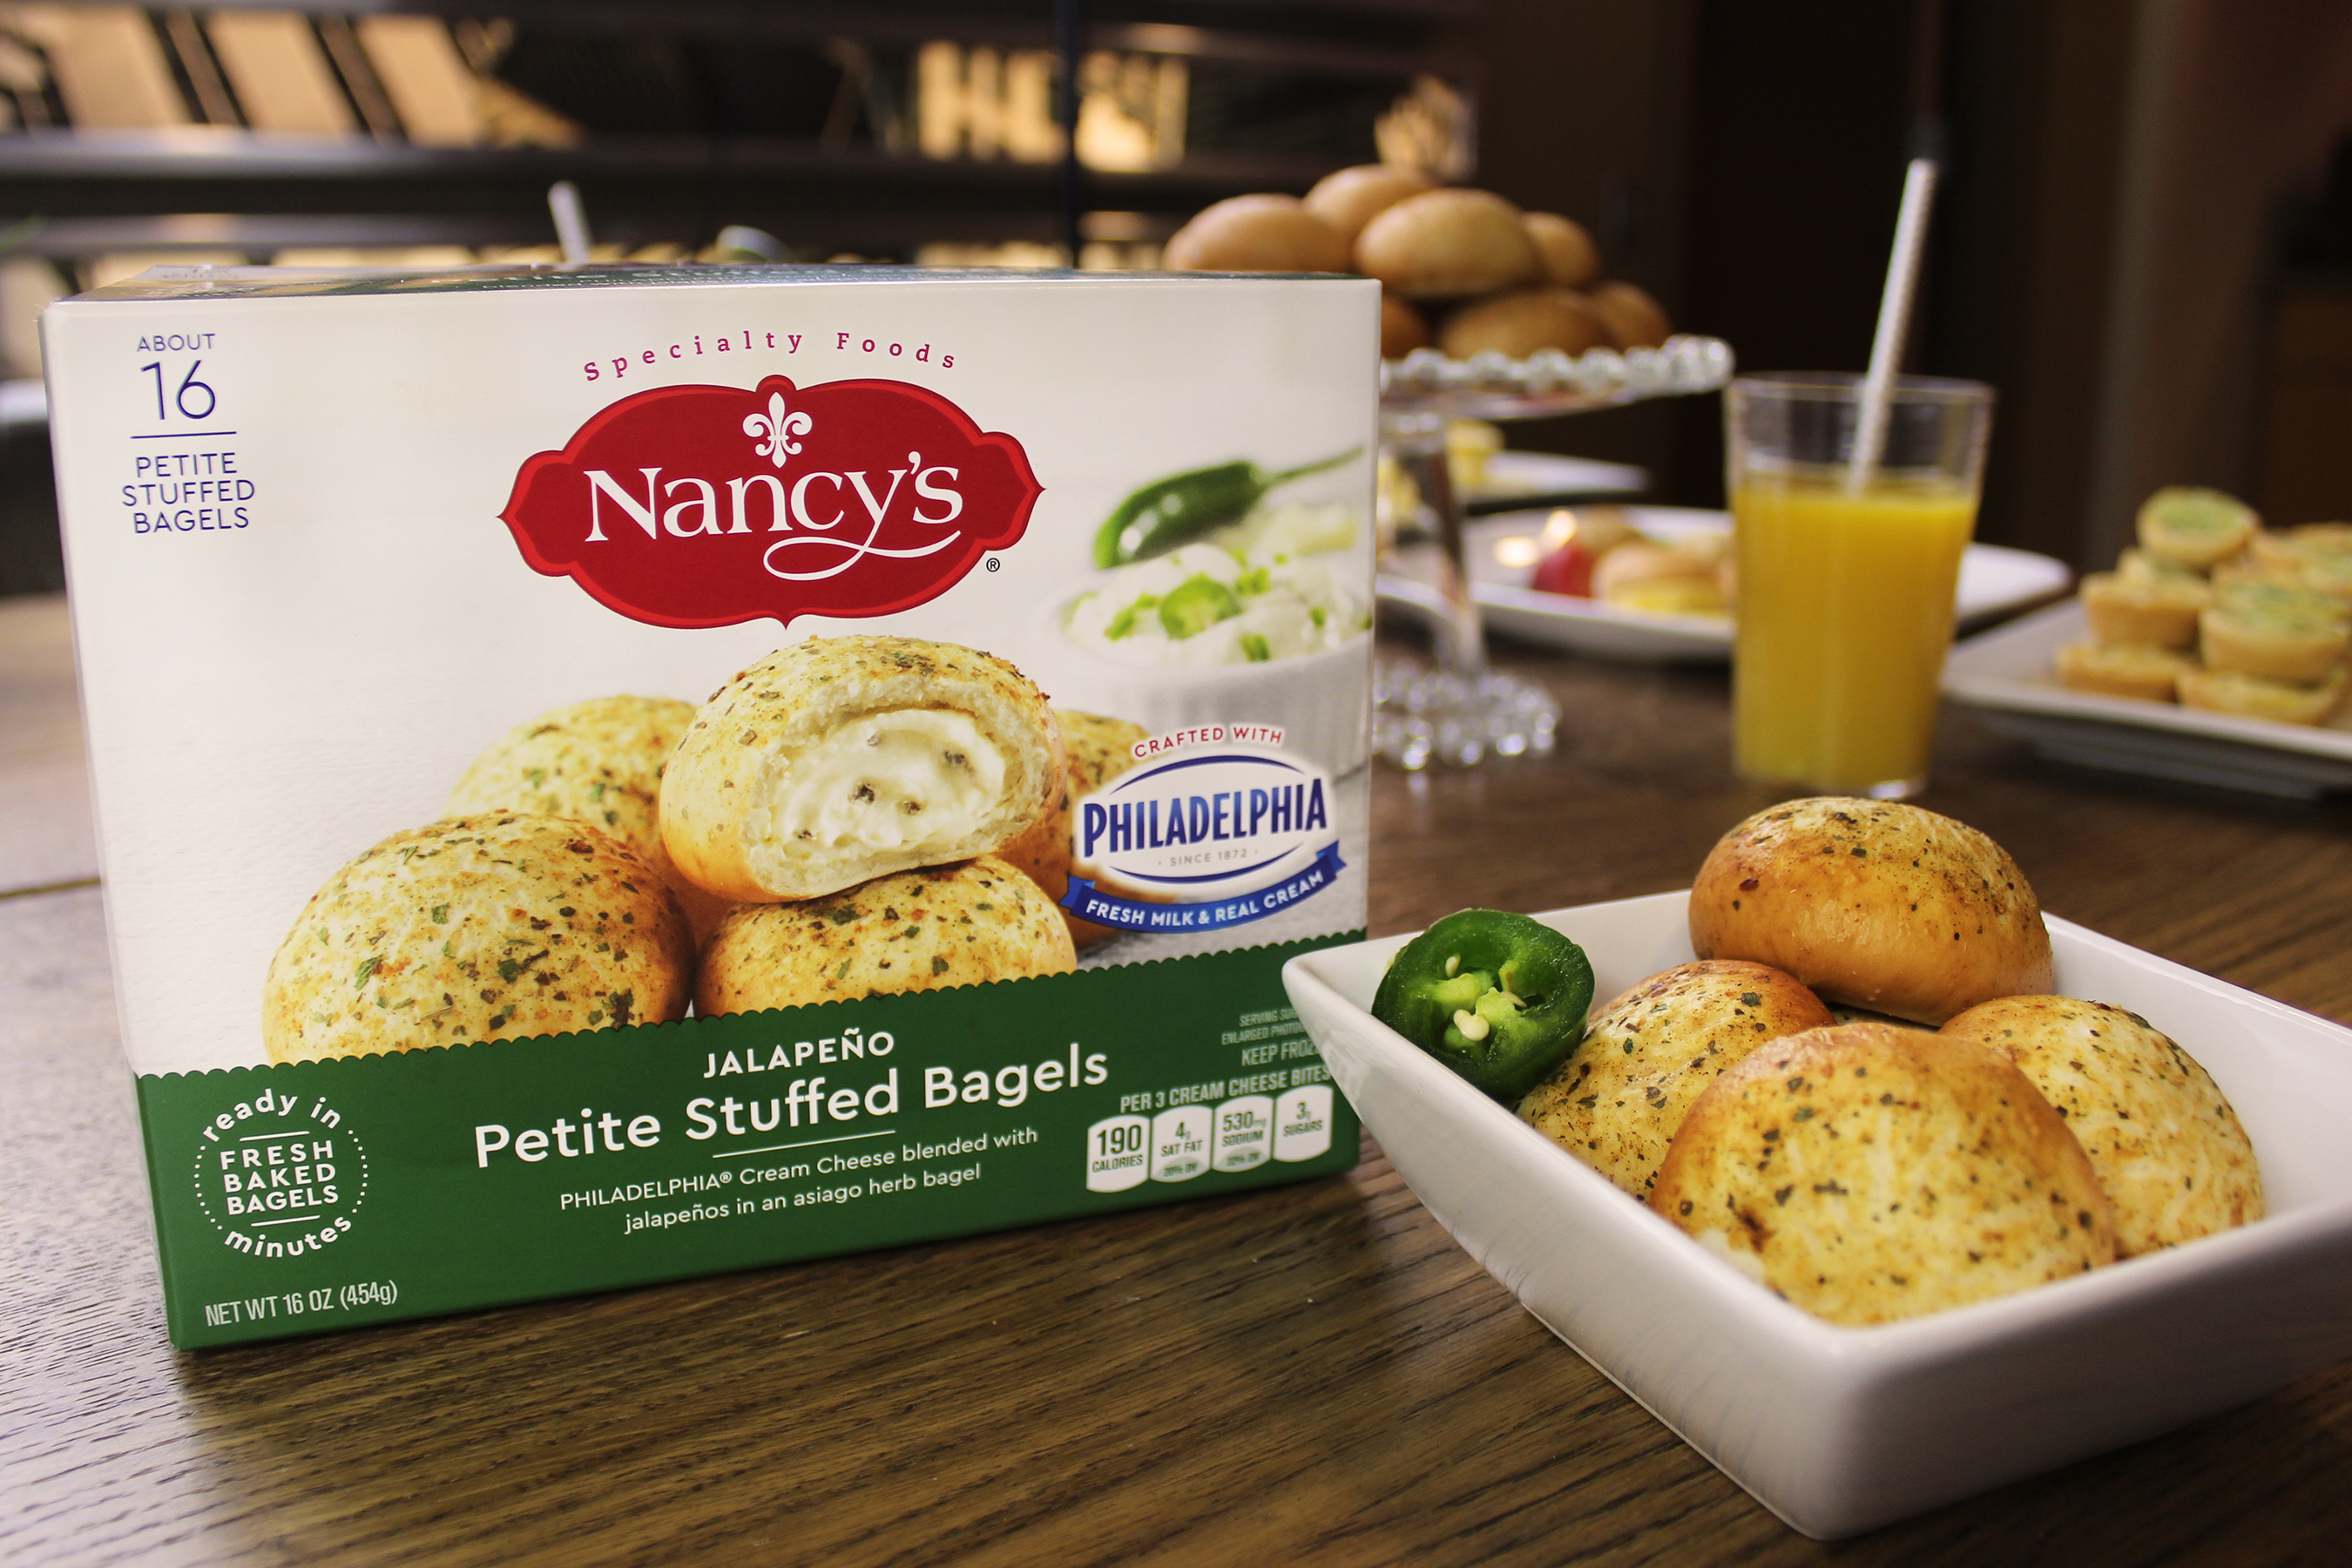 Create a pop of flavor excitement anytime with Nancy's Petite Stuffed Jalapeno Bagels made with PHILADELPHIA Cream Cheese blended with jalapenos in an asiago herb bagel